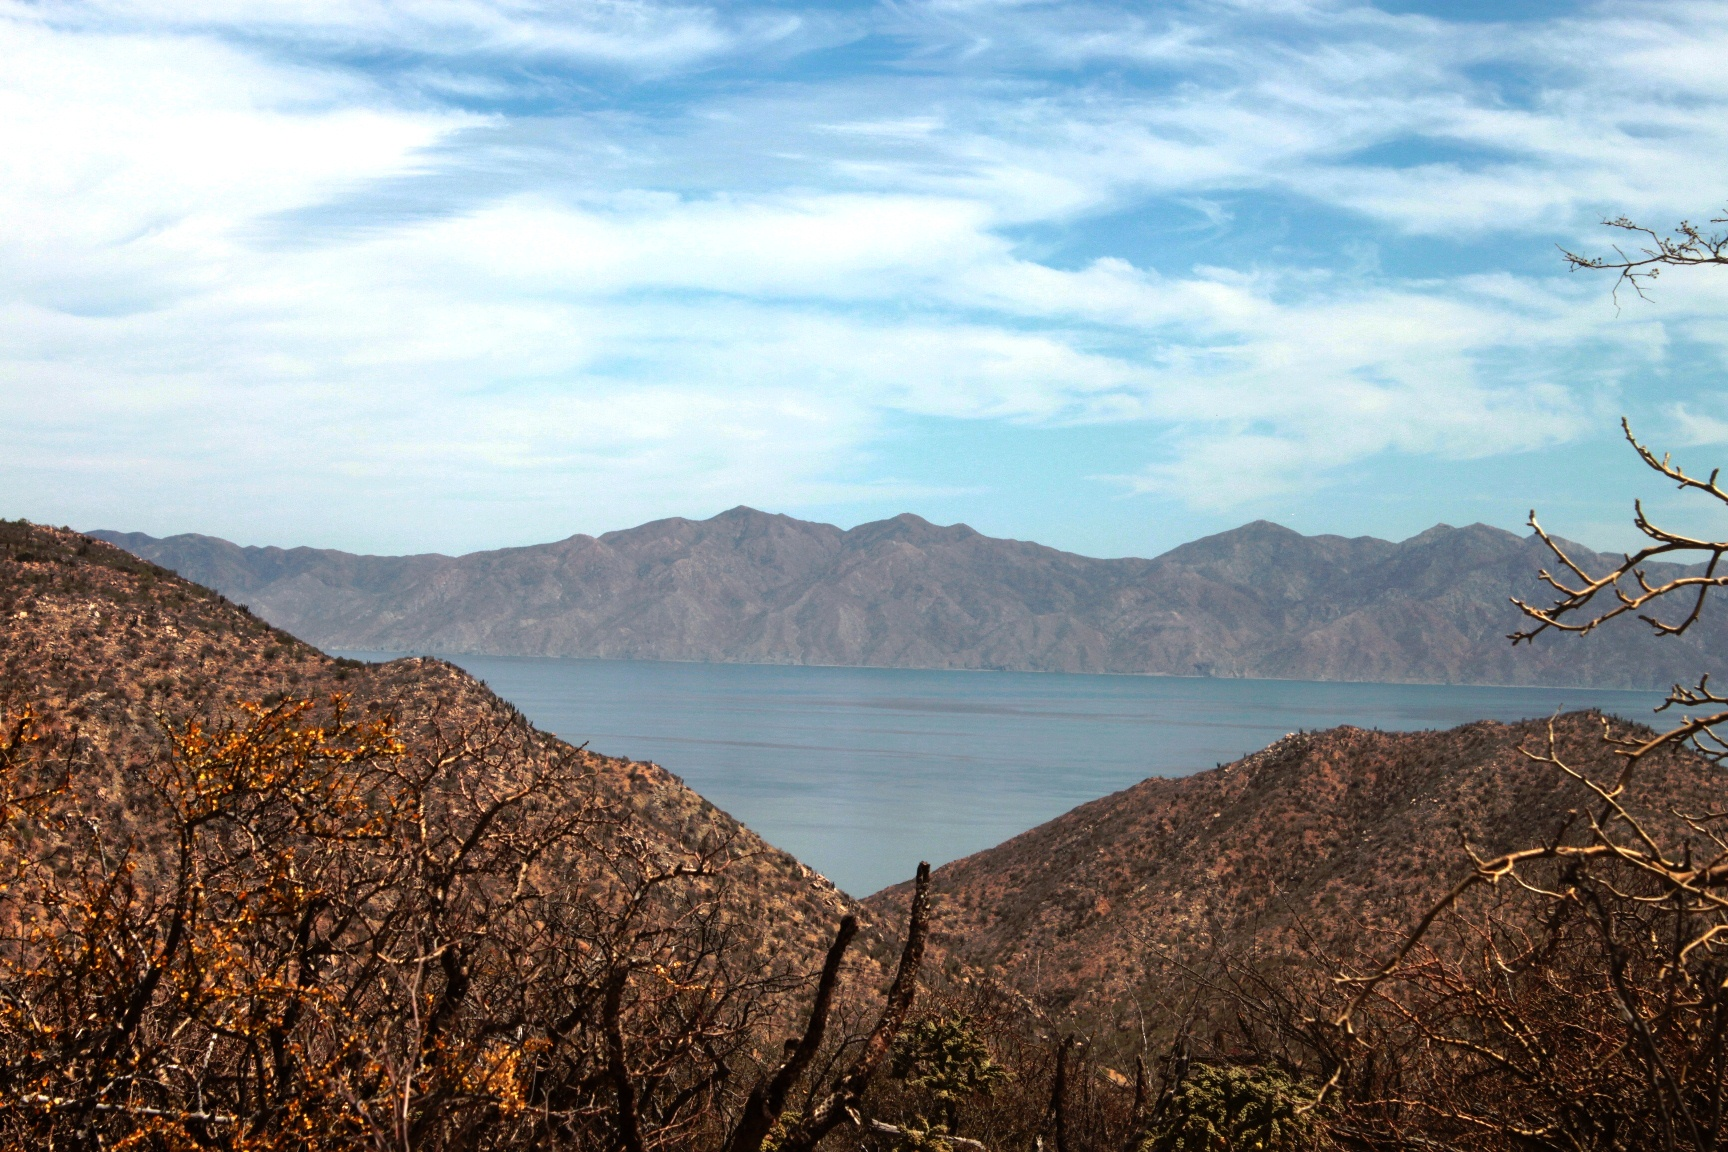 The view over Isla Cerralvo from Rancho Cacachilas